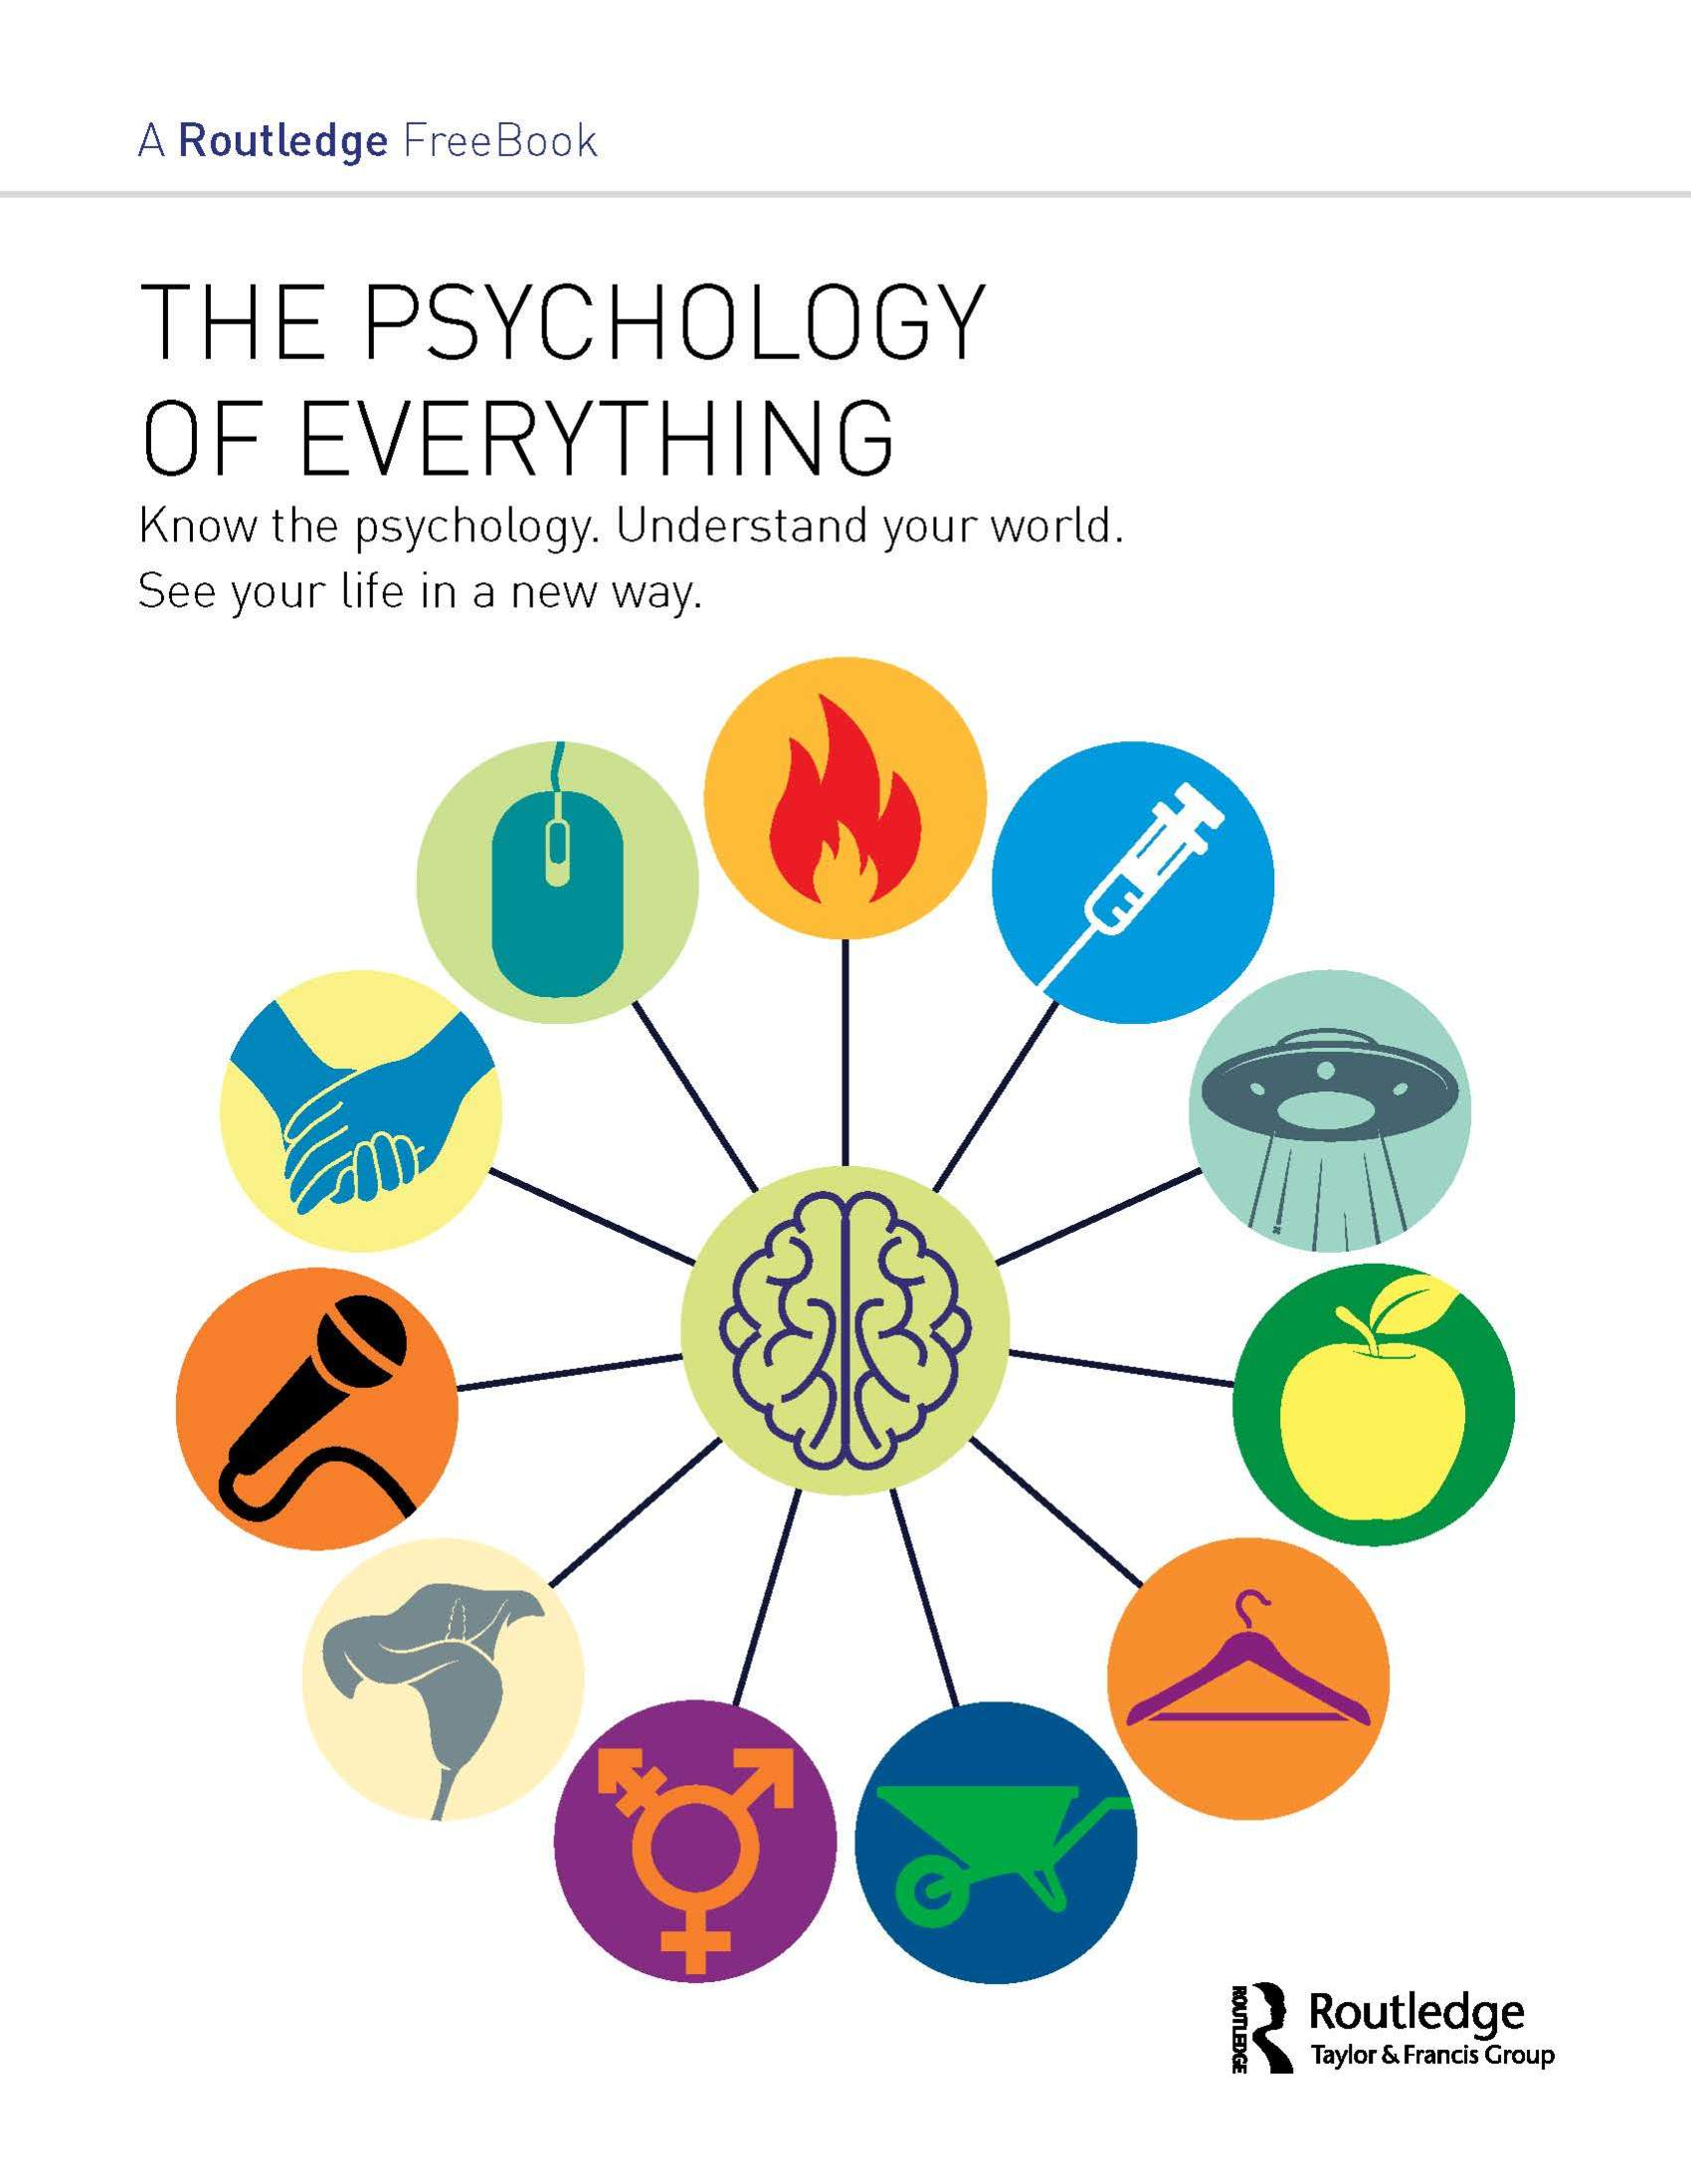 The Psychology of Everything